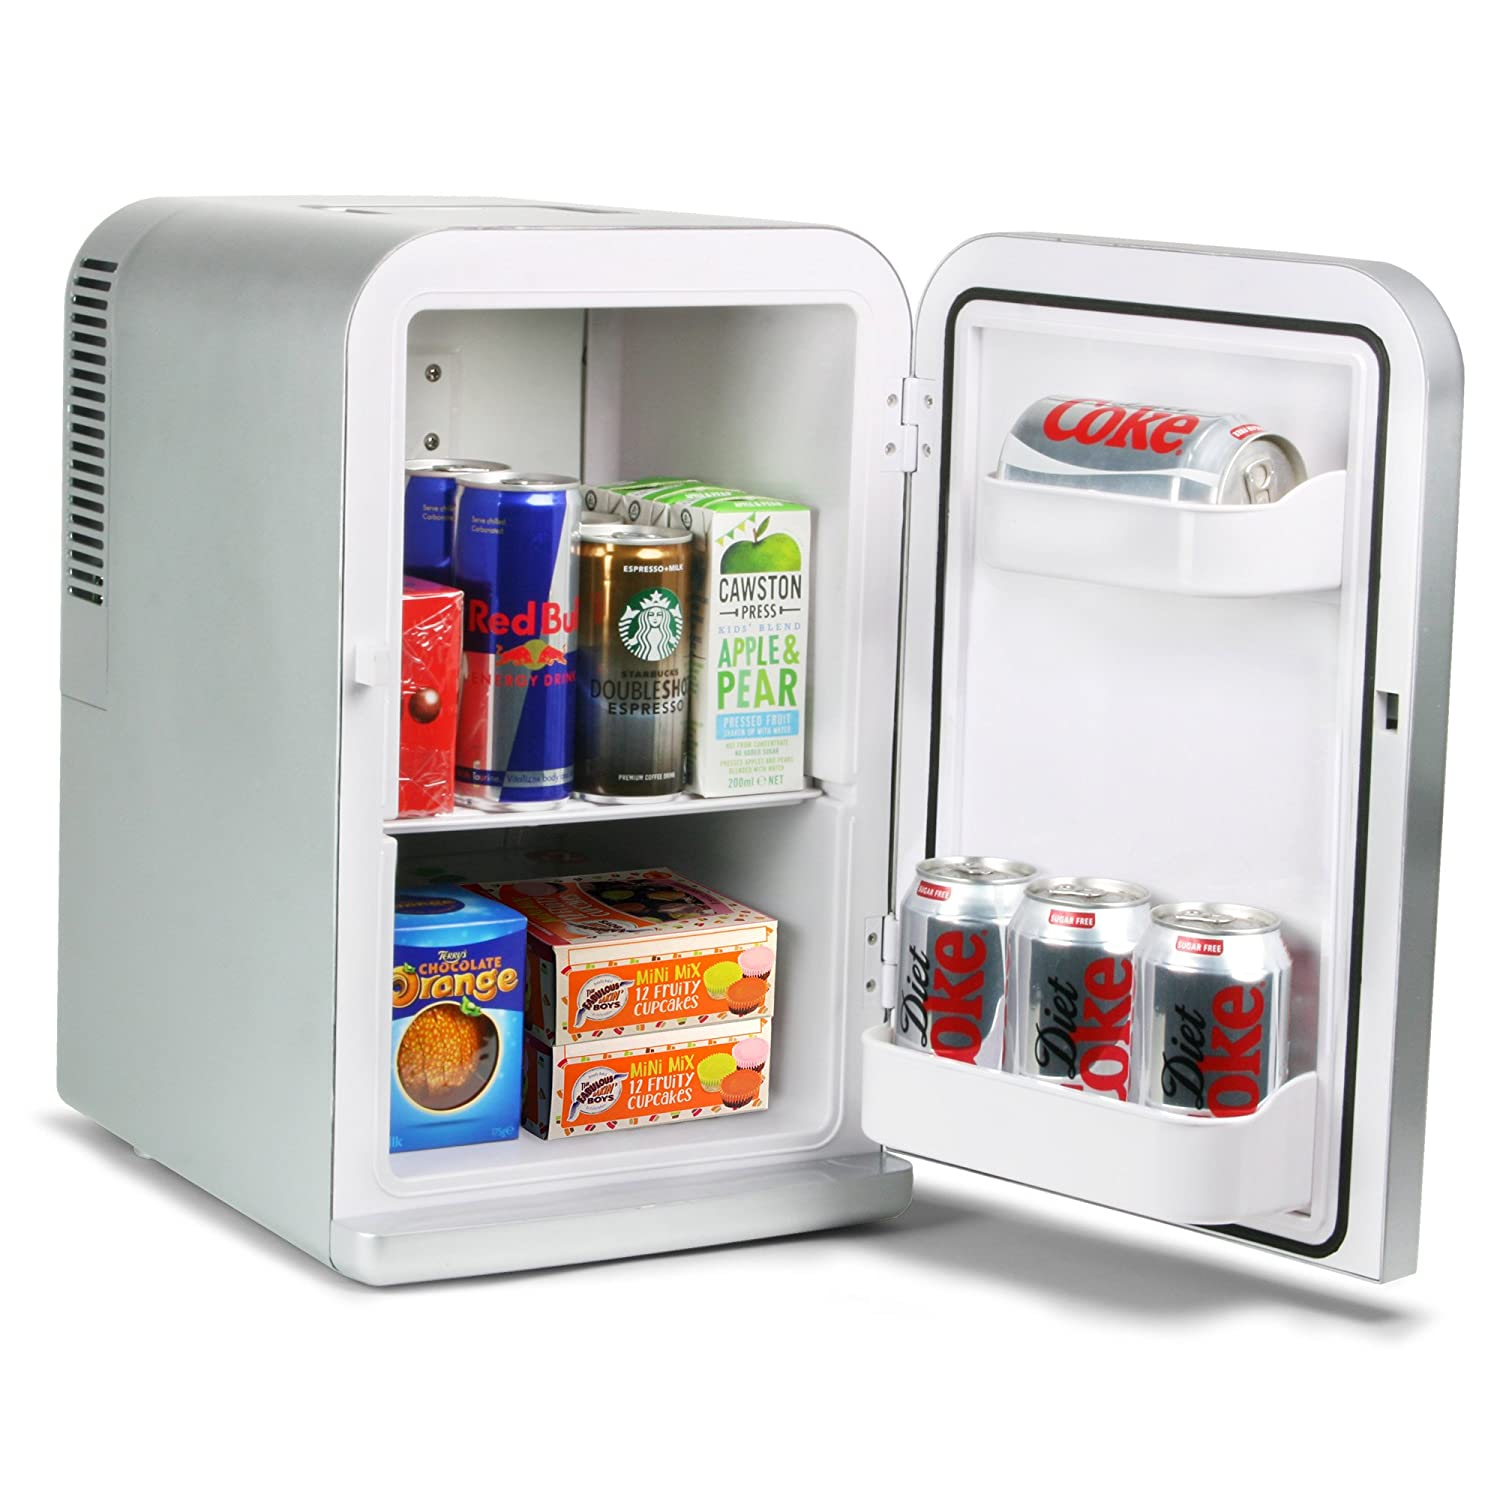 15 Litre Mini Fridge Cooler and Warmer - Silver | Thermoelectric Food & Drinks Chiller Ideal for Offices [Energy Class A++] bar@drinkstuff